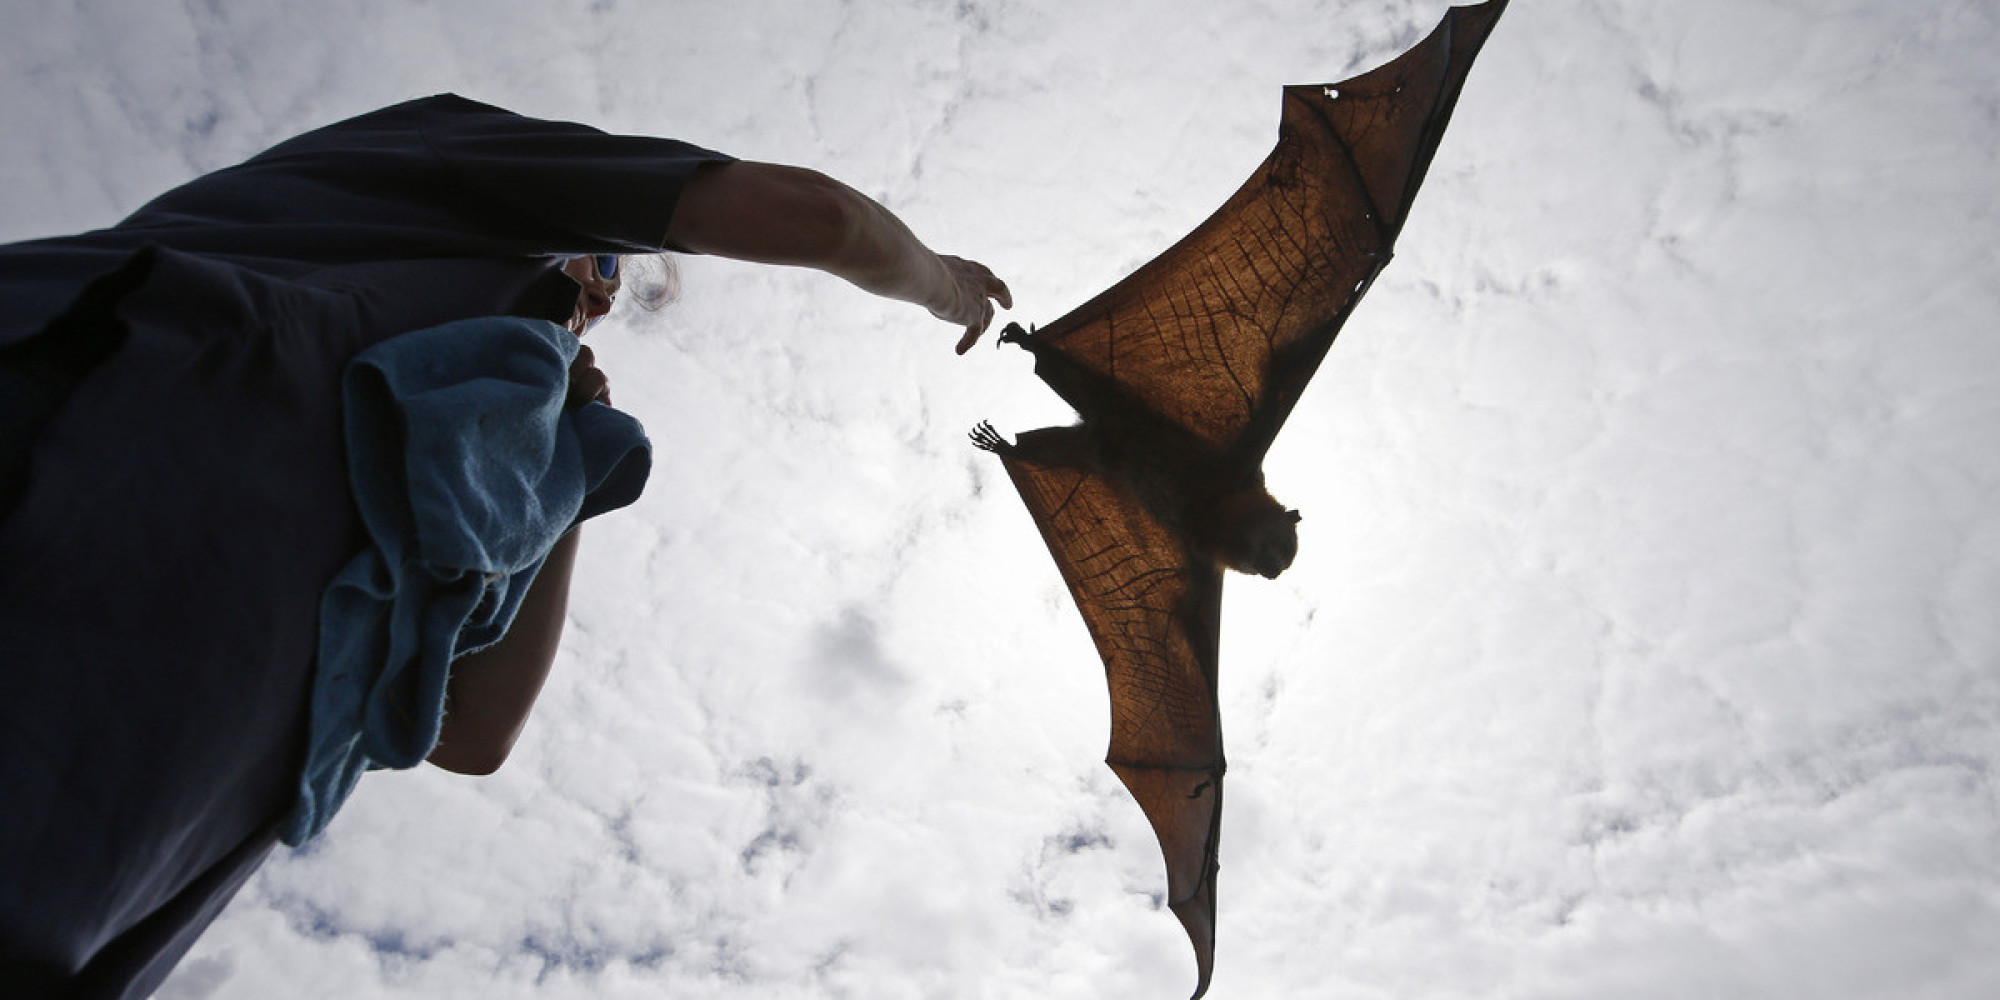 If You're Wondering What A Flying Fox Looks Like...